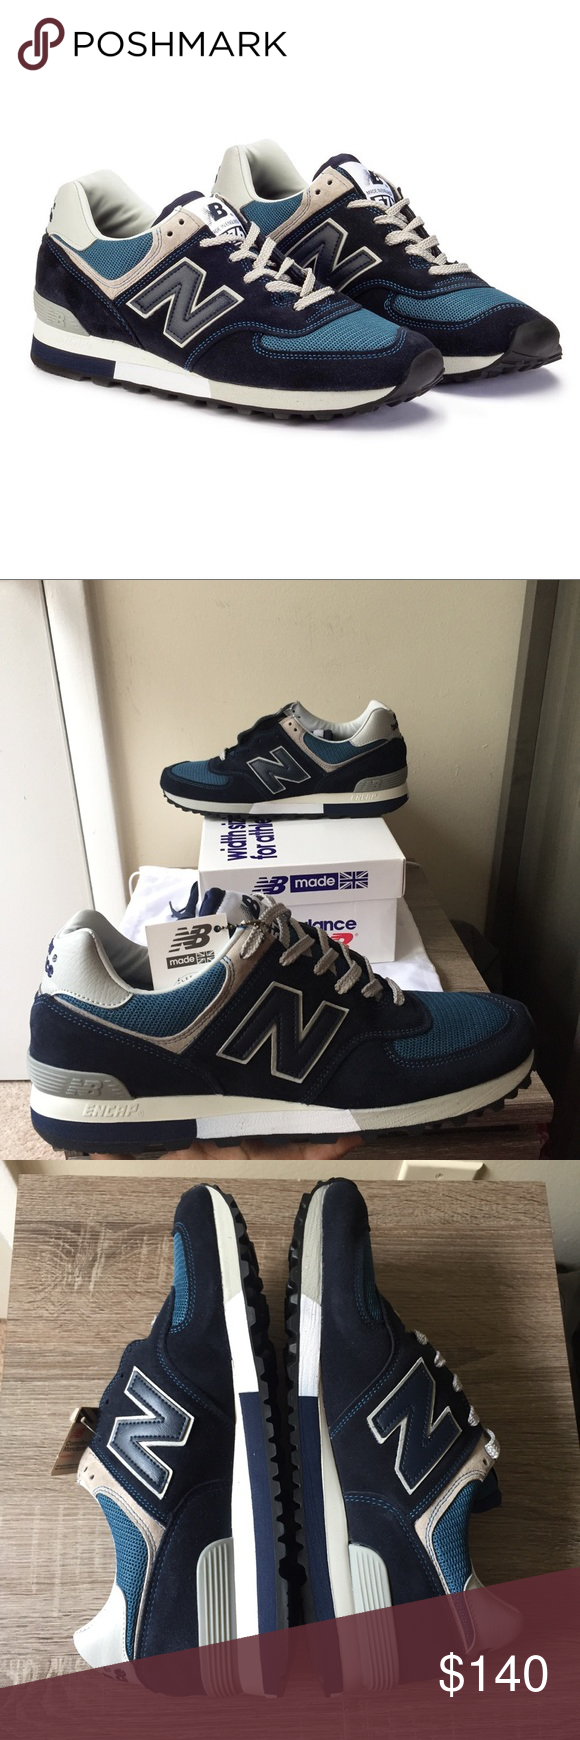 buy online de637 d43f5 NEW BALANCE 576 MADE IN UK LIMITED EDITION PRICE IS FIRM ...